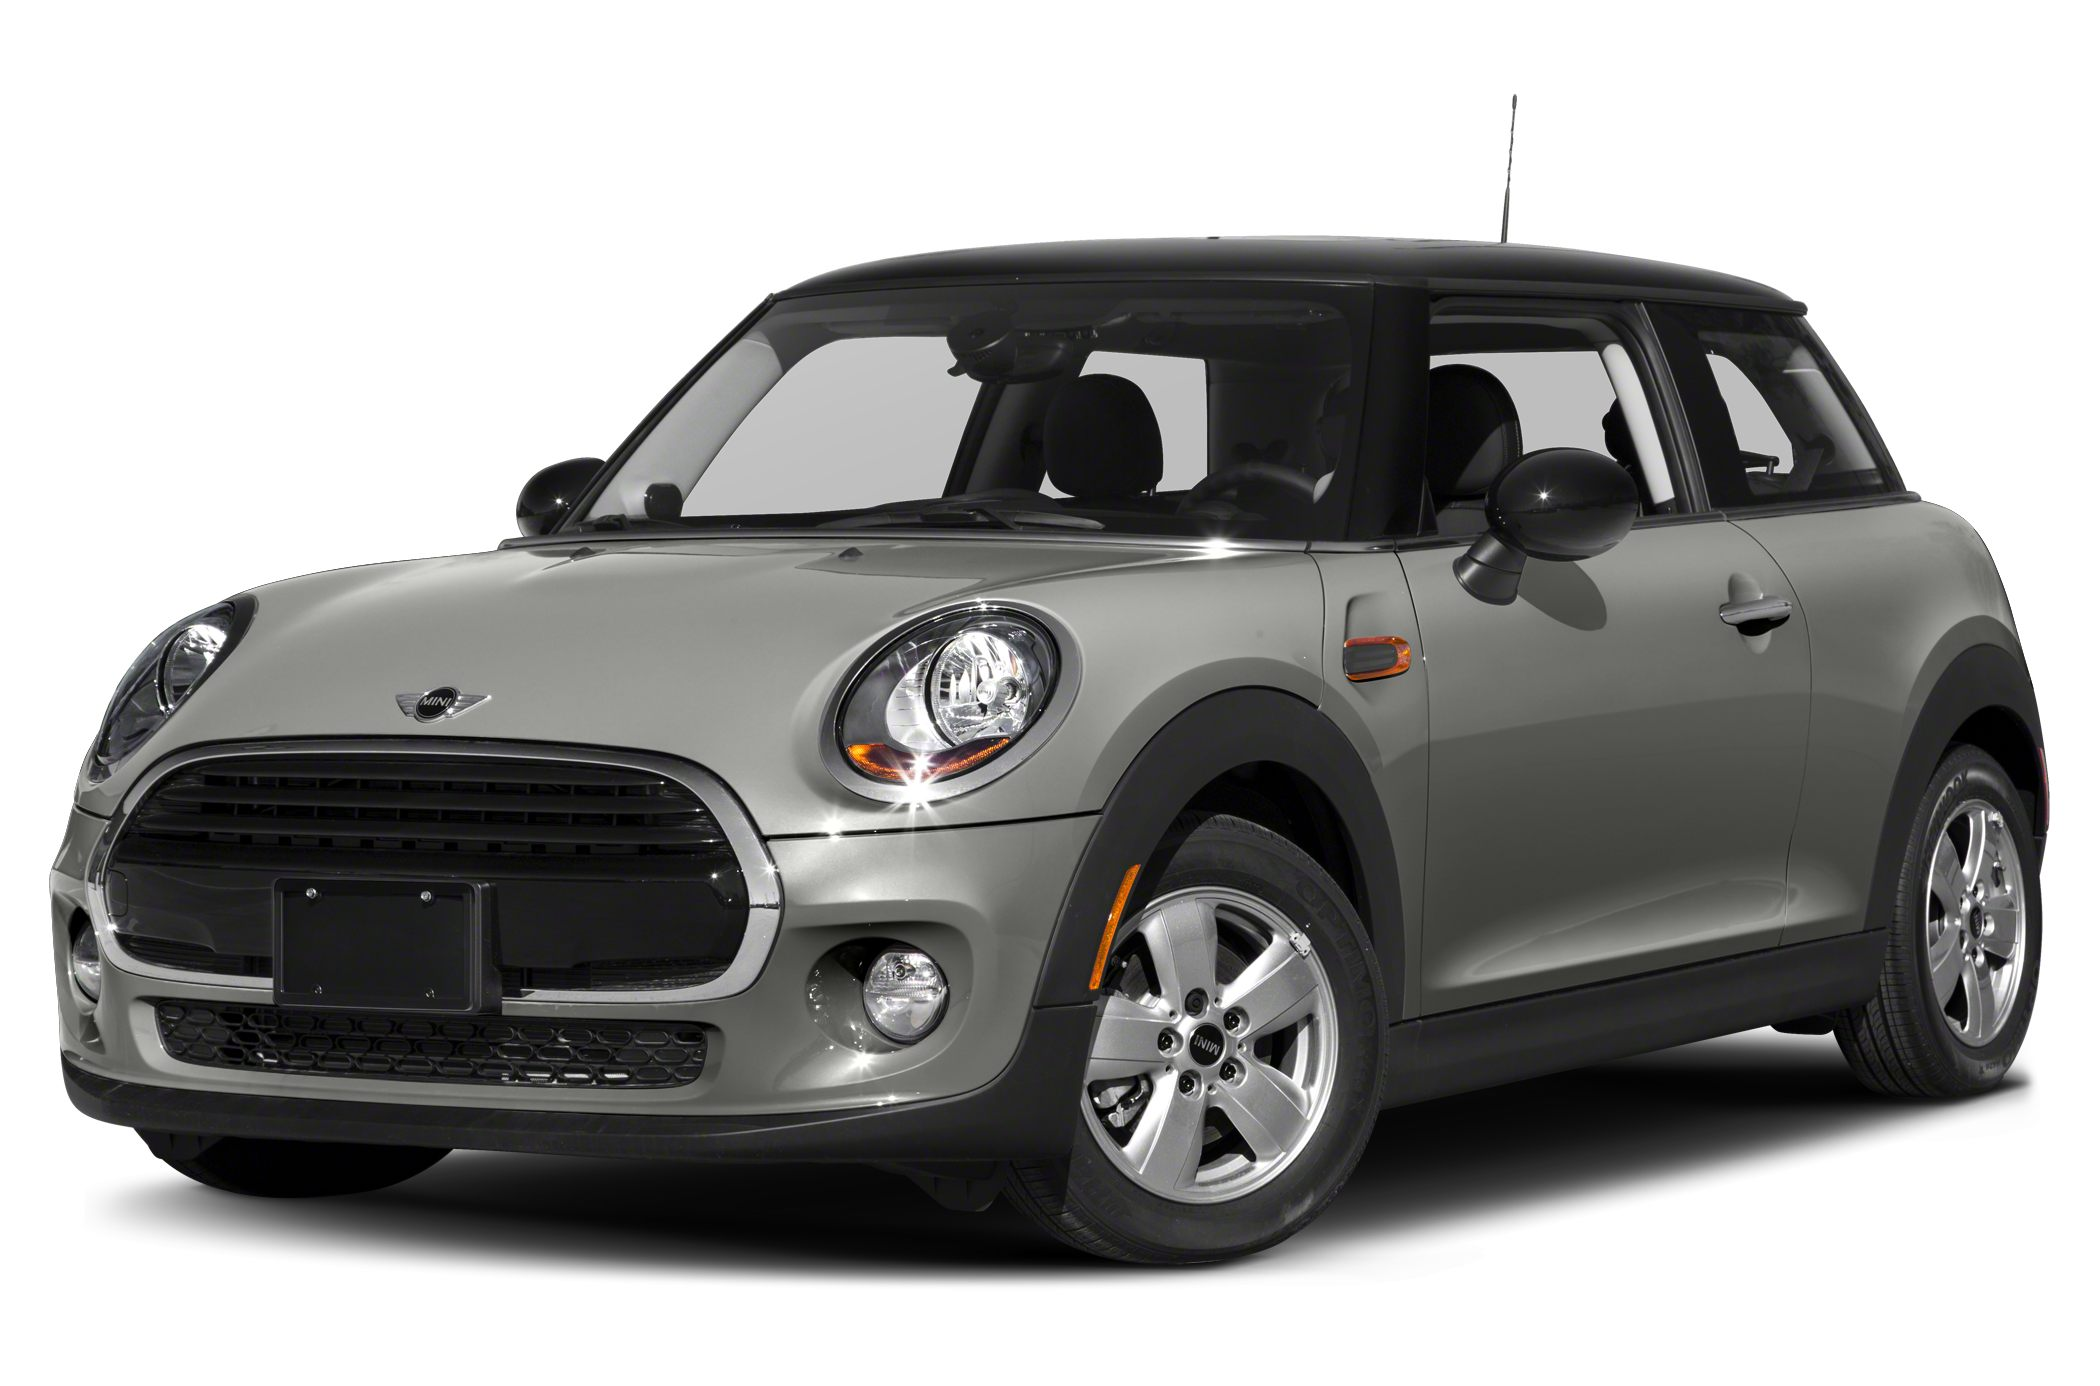 2014 mini cooper s autoblog. Black Bedroom Furniture Sets. Home Design Ideas